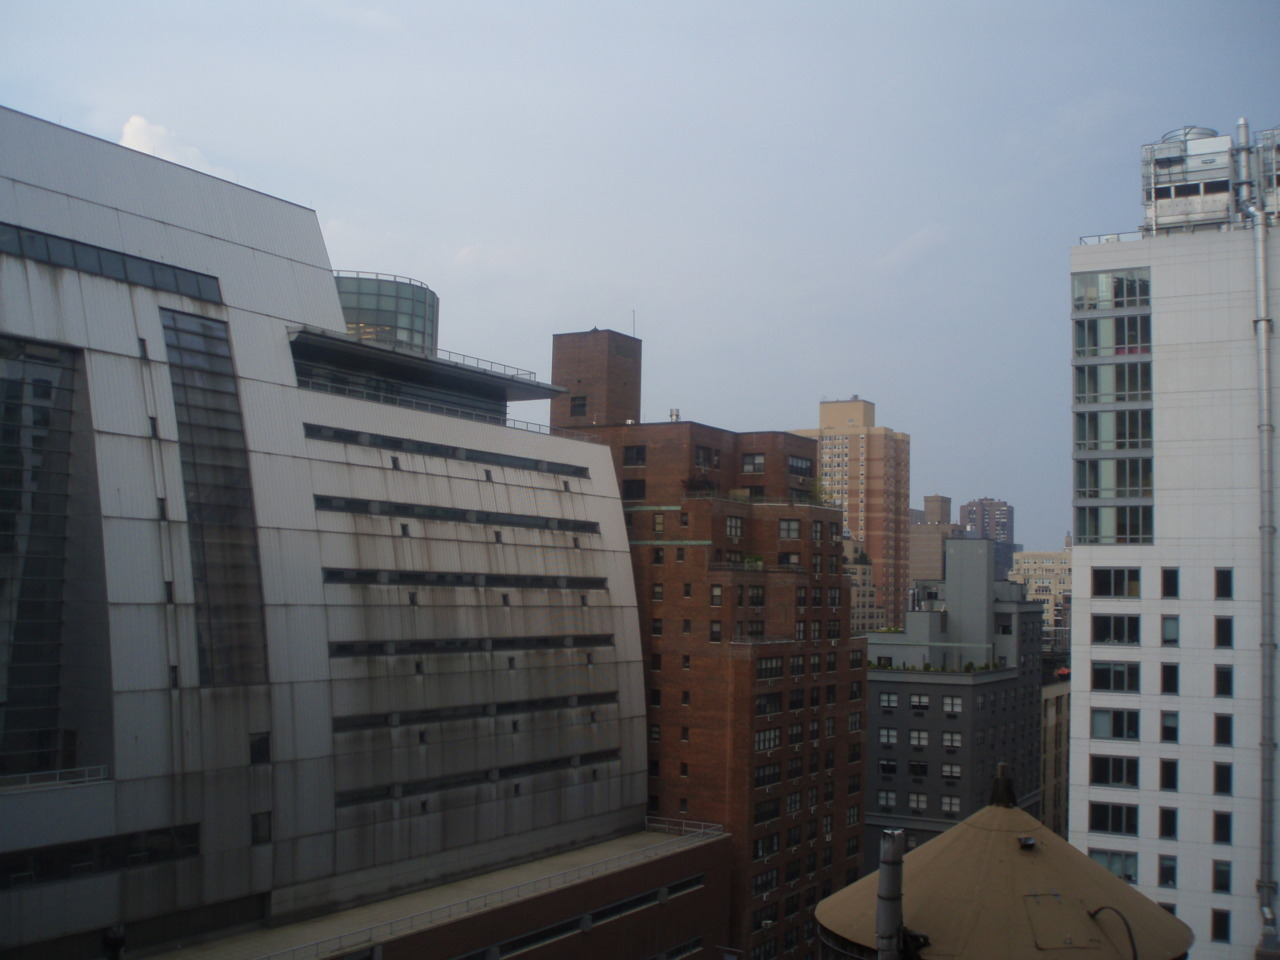 View from the apartment window, New York, Summer 2010